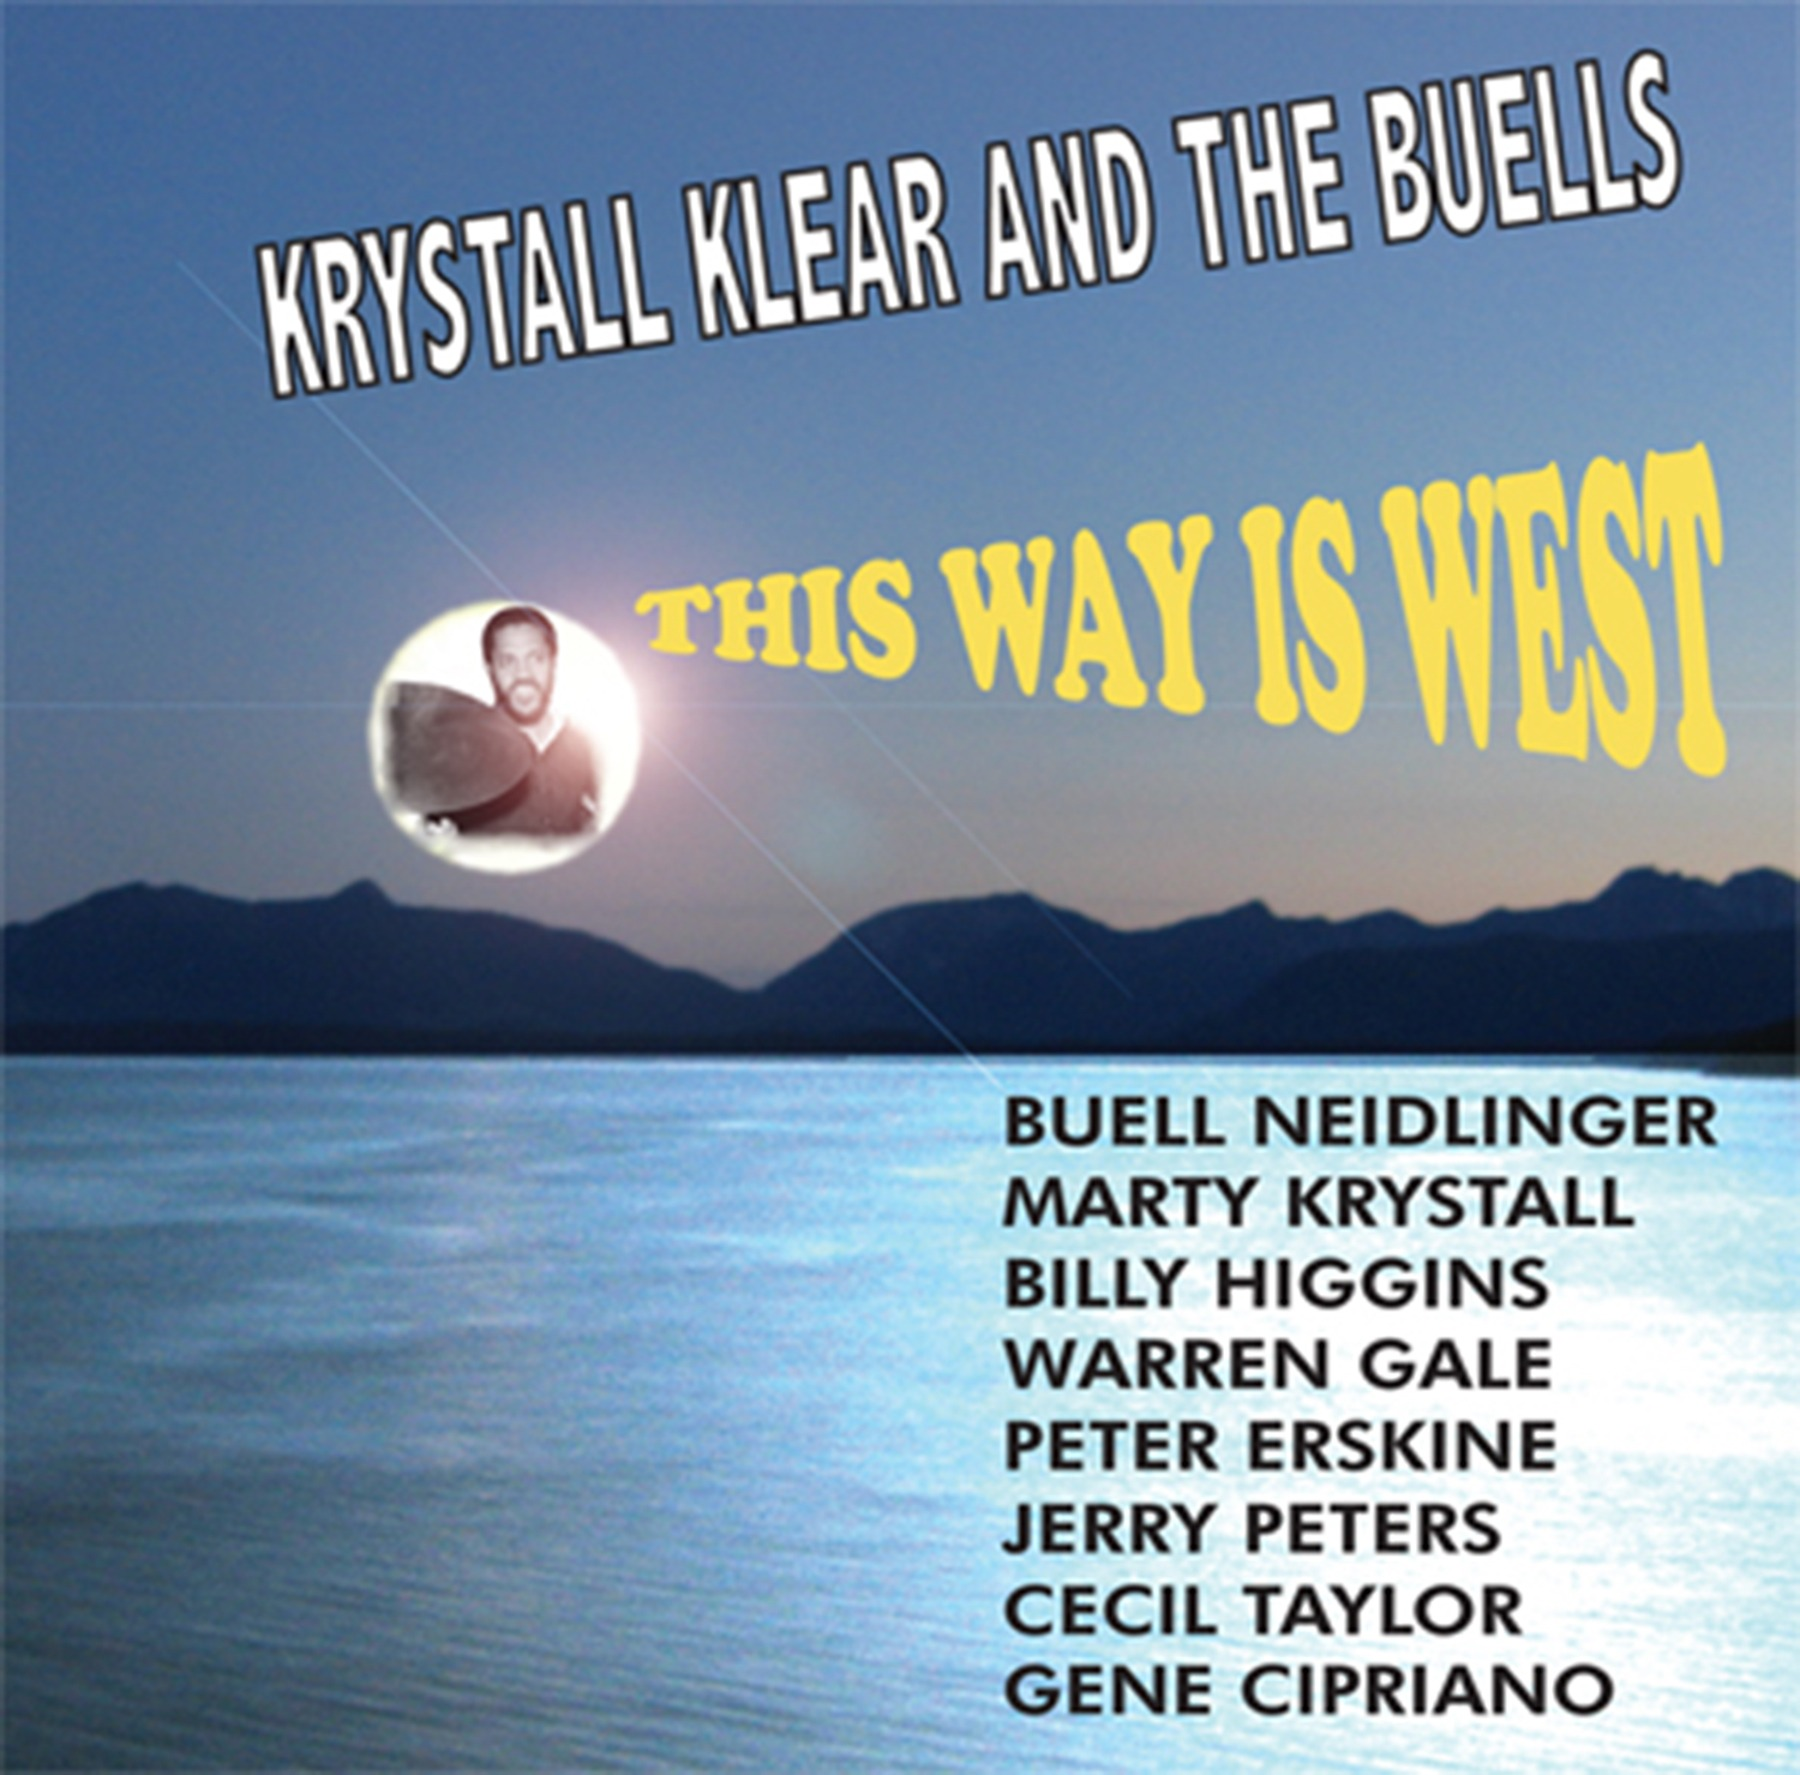 Krystall Klear and the Buells - This Way Is West (K2B2 3369) FLAC 44.1/16-bit